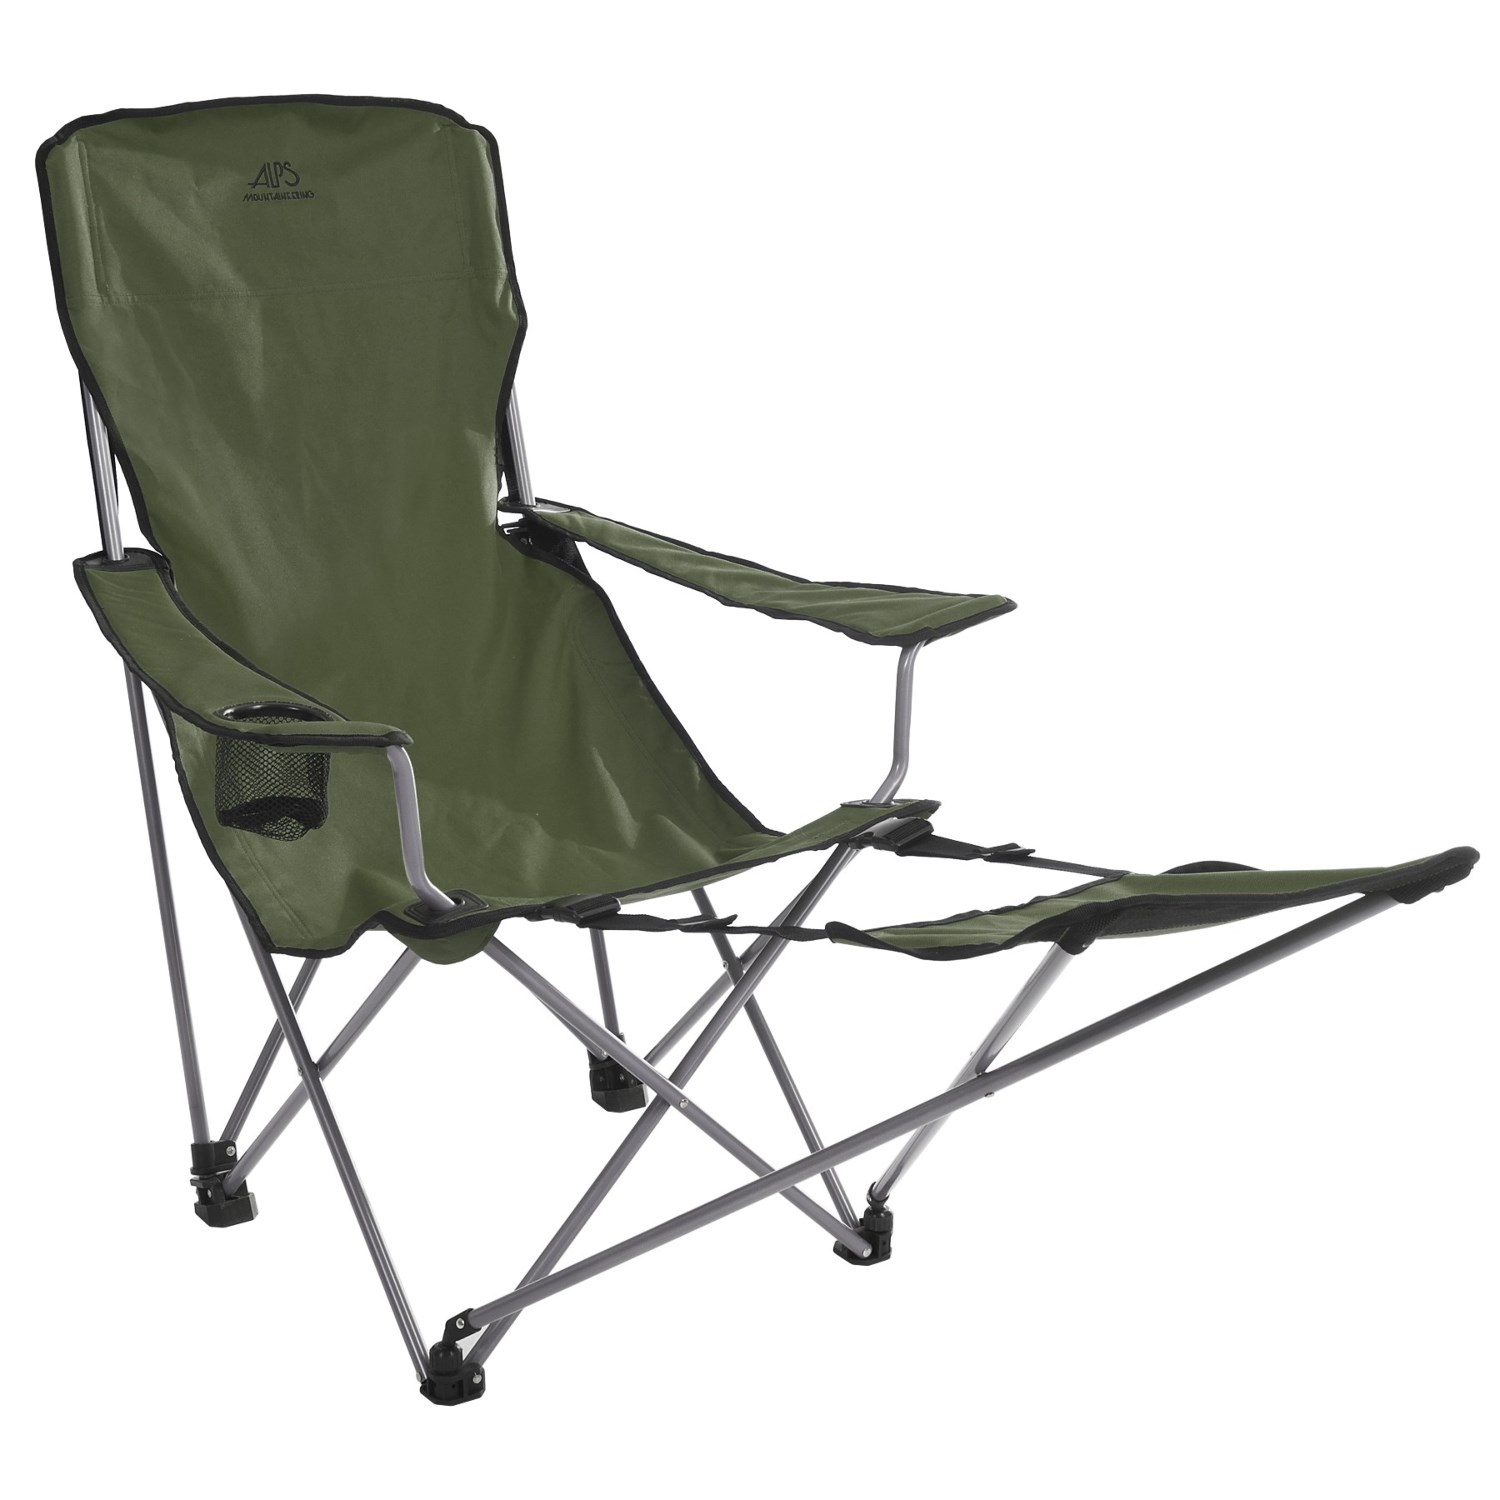 The Most Comfortable And Relaxing Folding Chair Weve Ever Owned